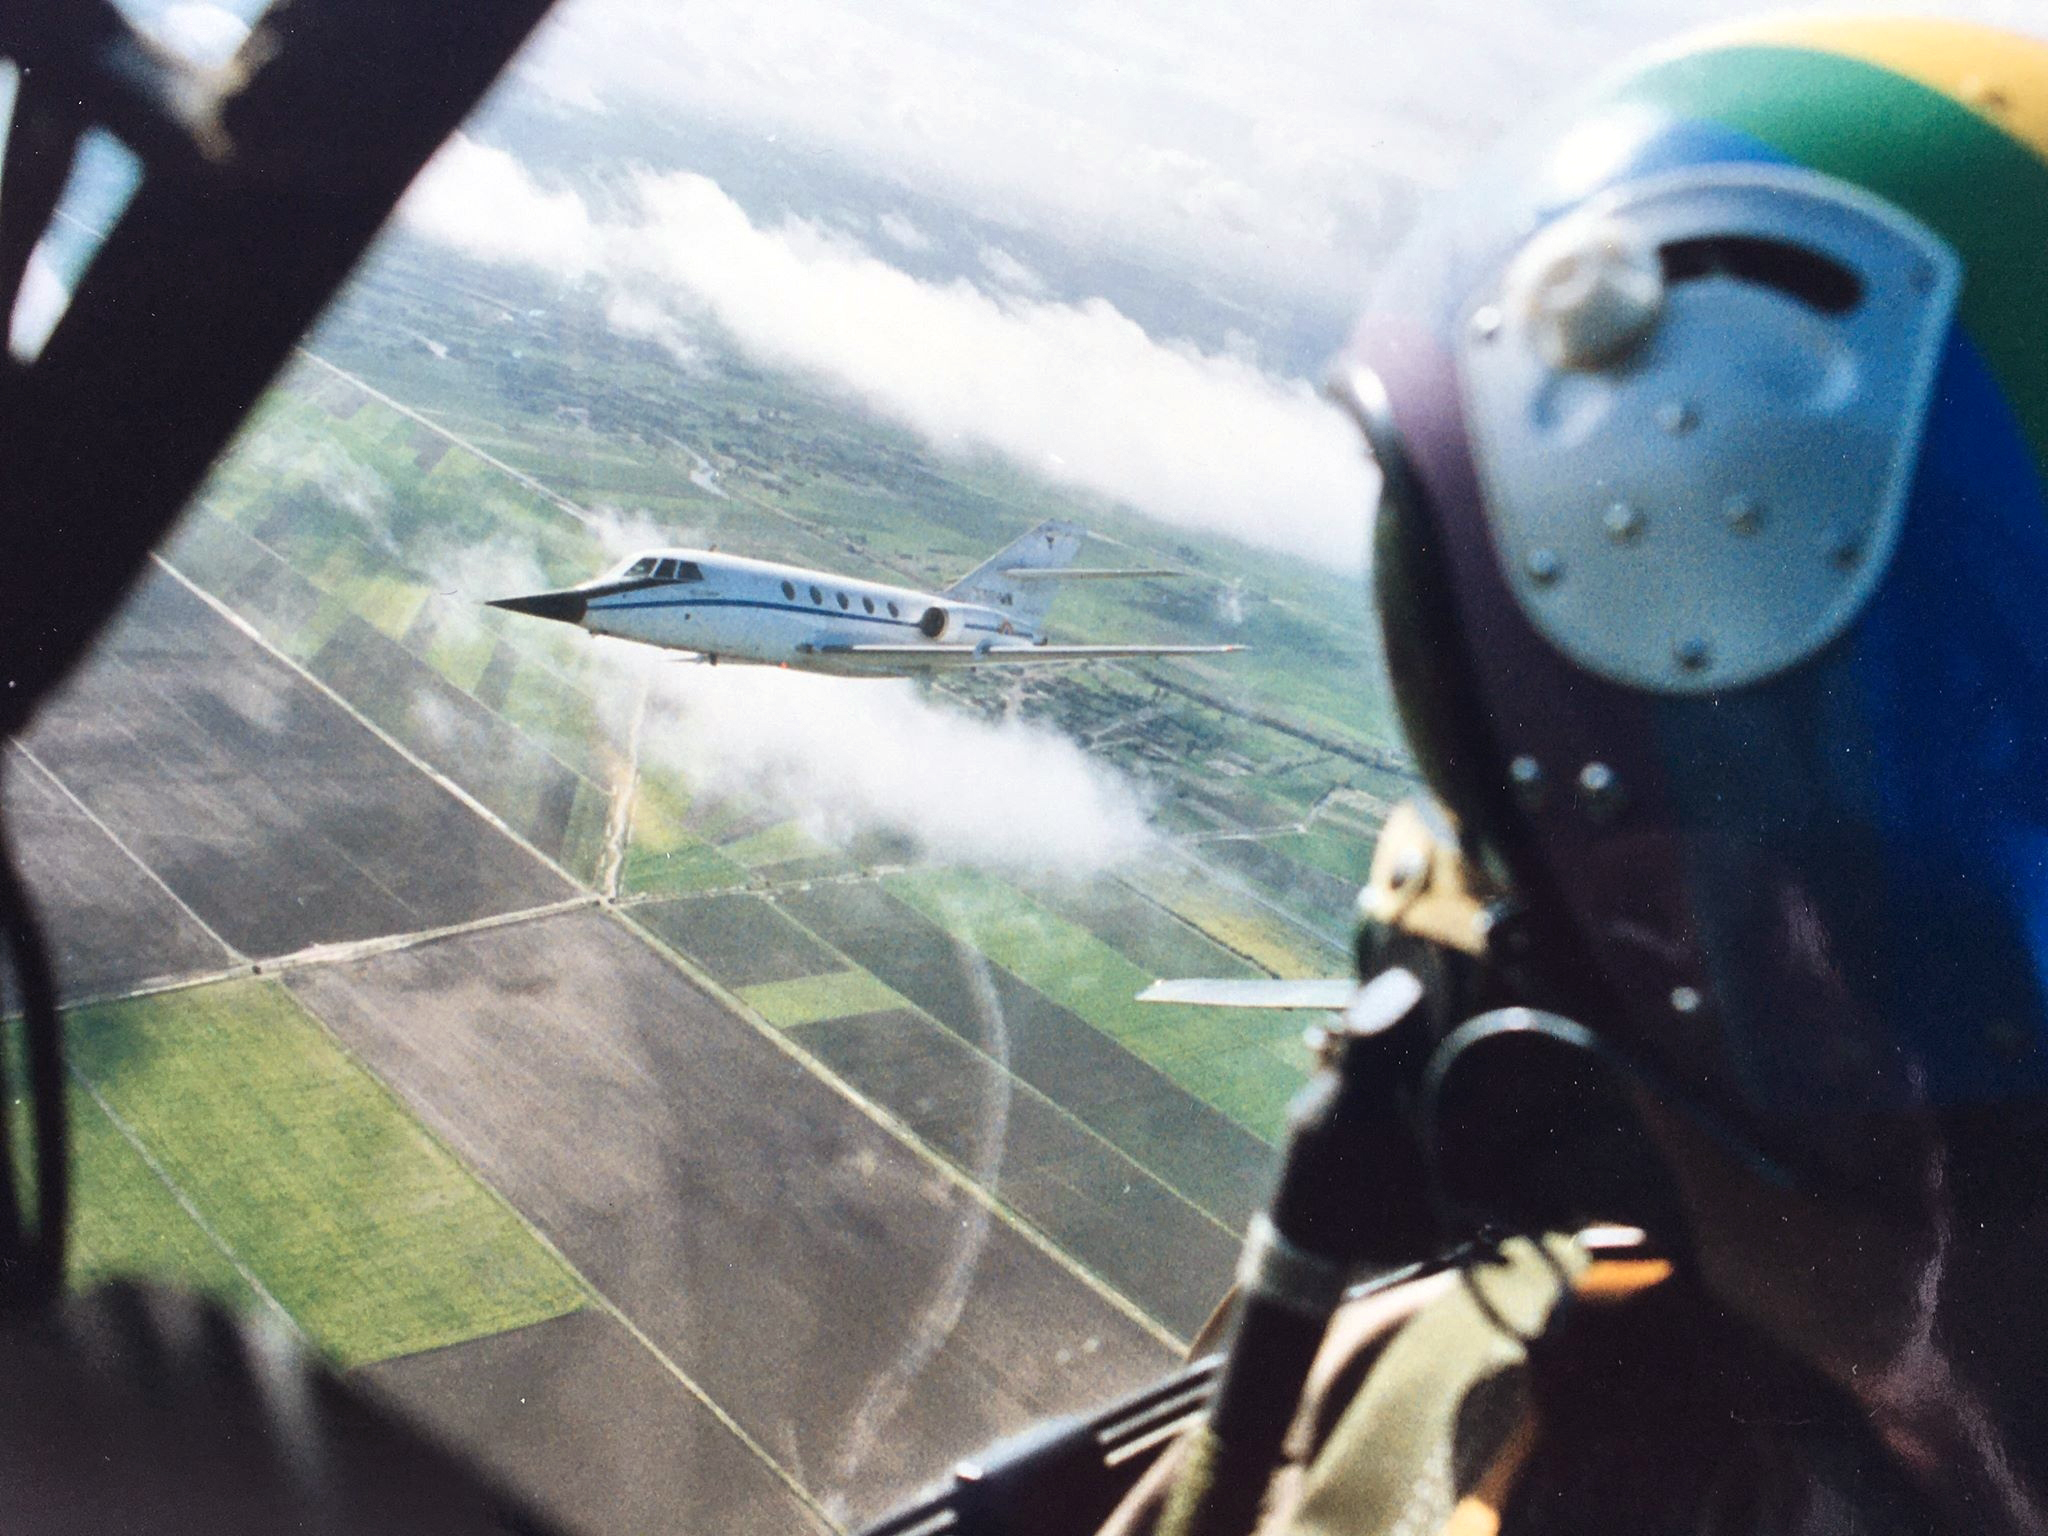 FRA: Photos Mirage F1 - Page 16 50164704248_b945b904bc_o_d